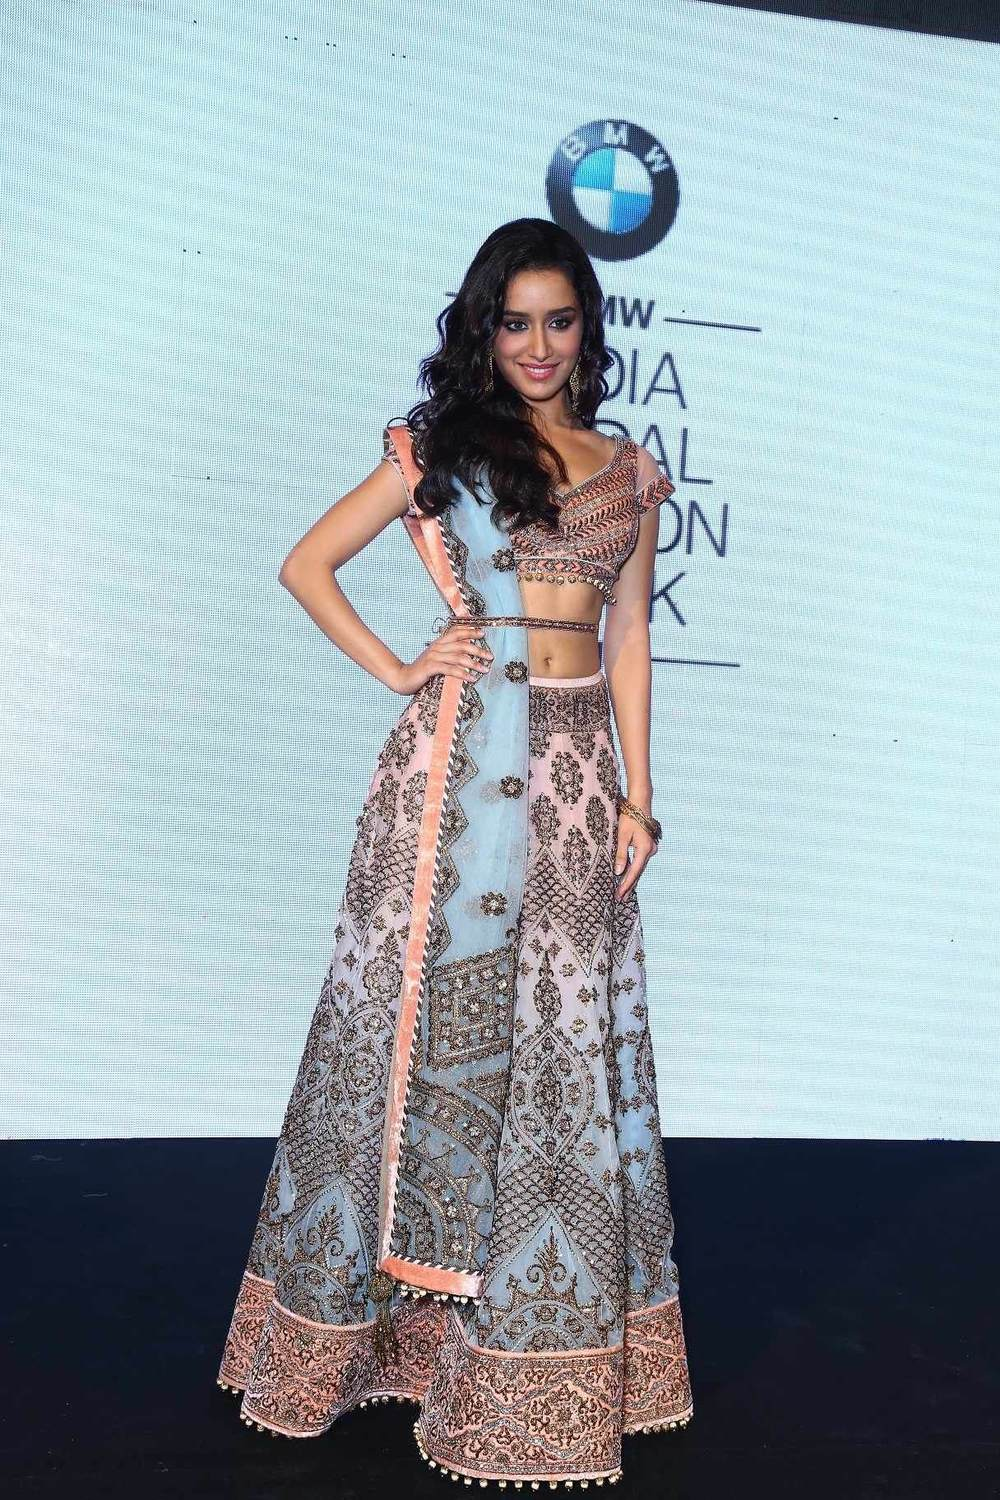 Shradhha Kapoor in a stunning JJ Valaya creation.